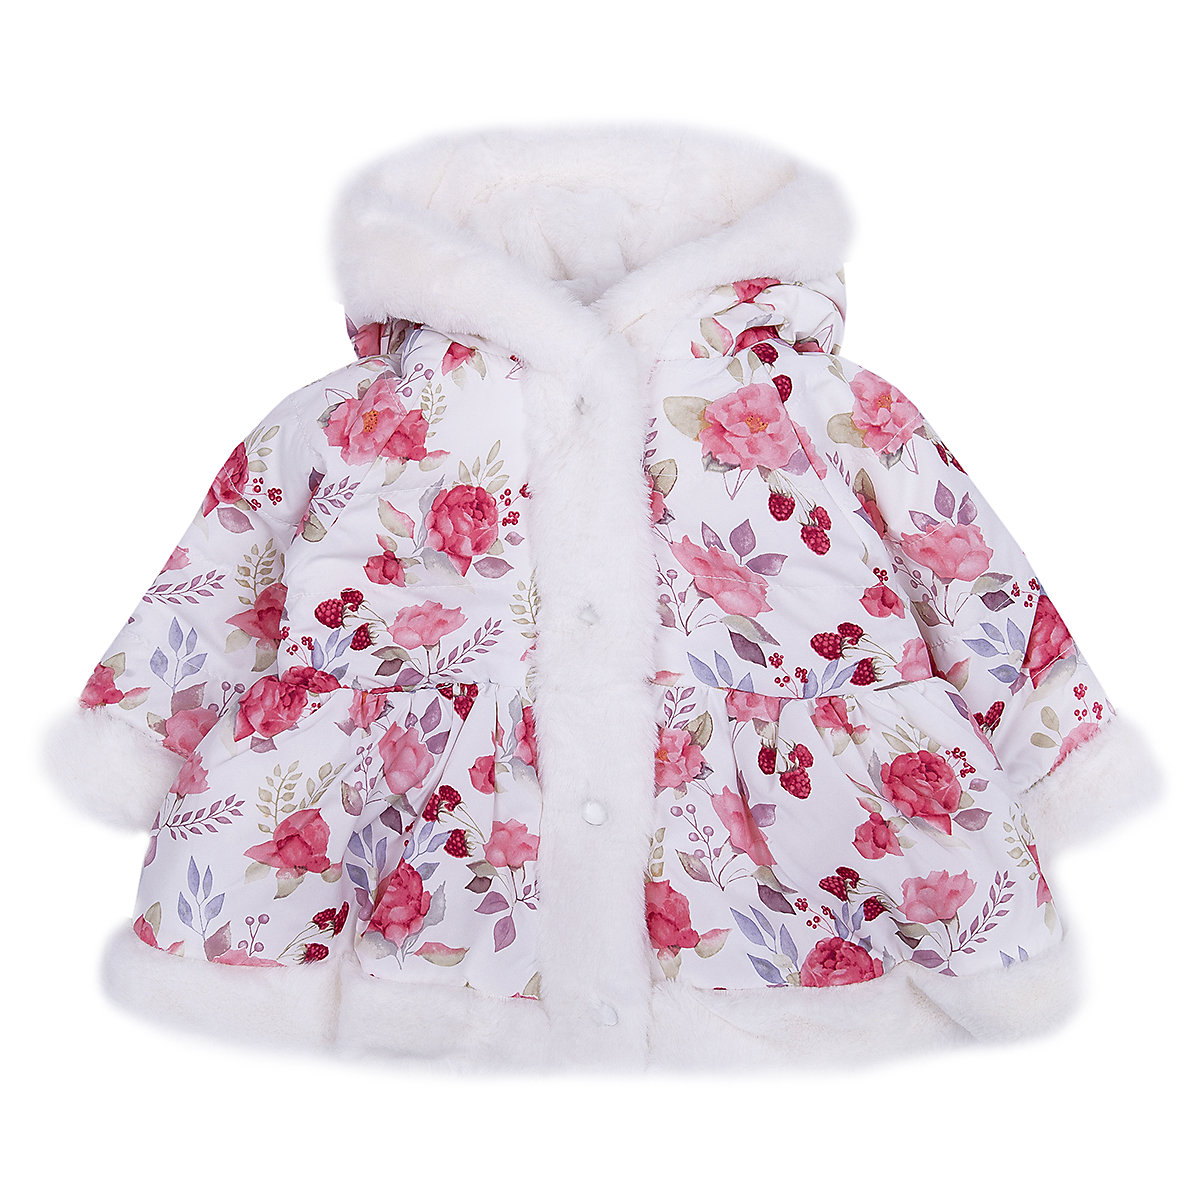 Original Marines Jackets & Coats 9501972 Polyester Girls girl children clothing reima jackets 8665394 for girls polyester winter fur clothes girl